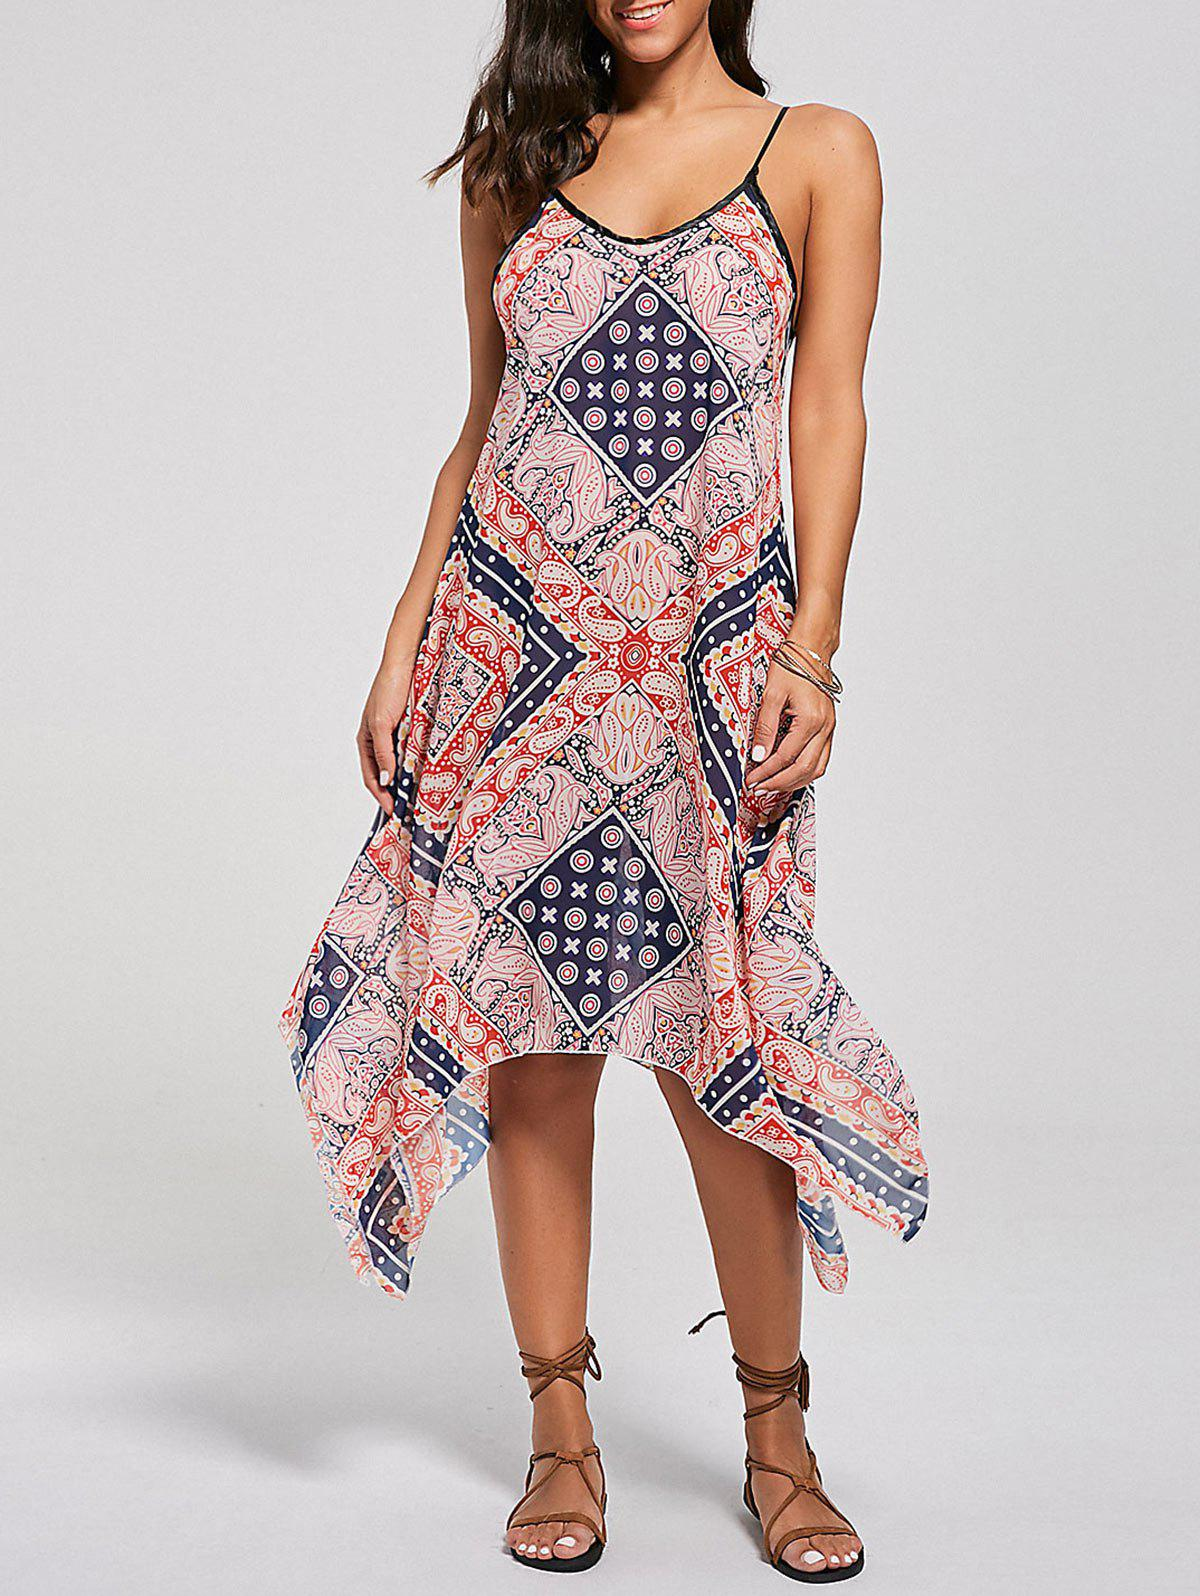 Sale Tribal Print Lace Up Handkerchief Bohemian Dress